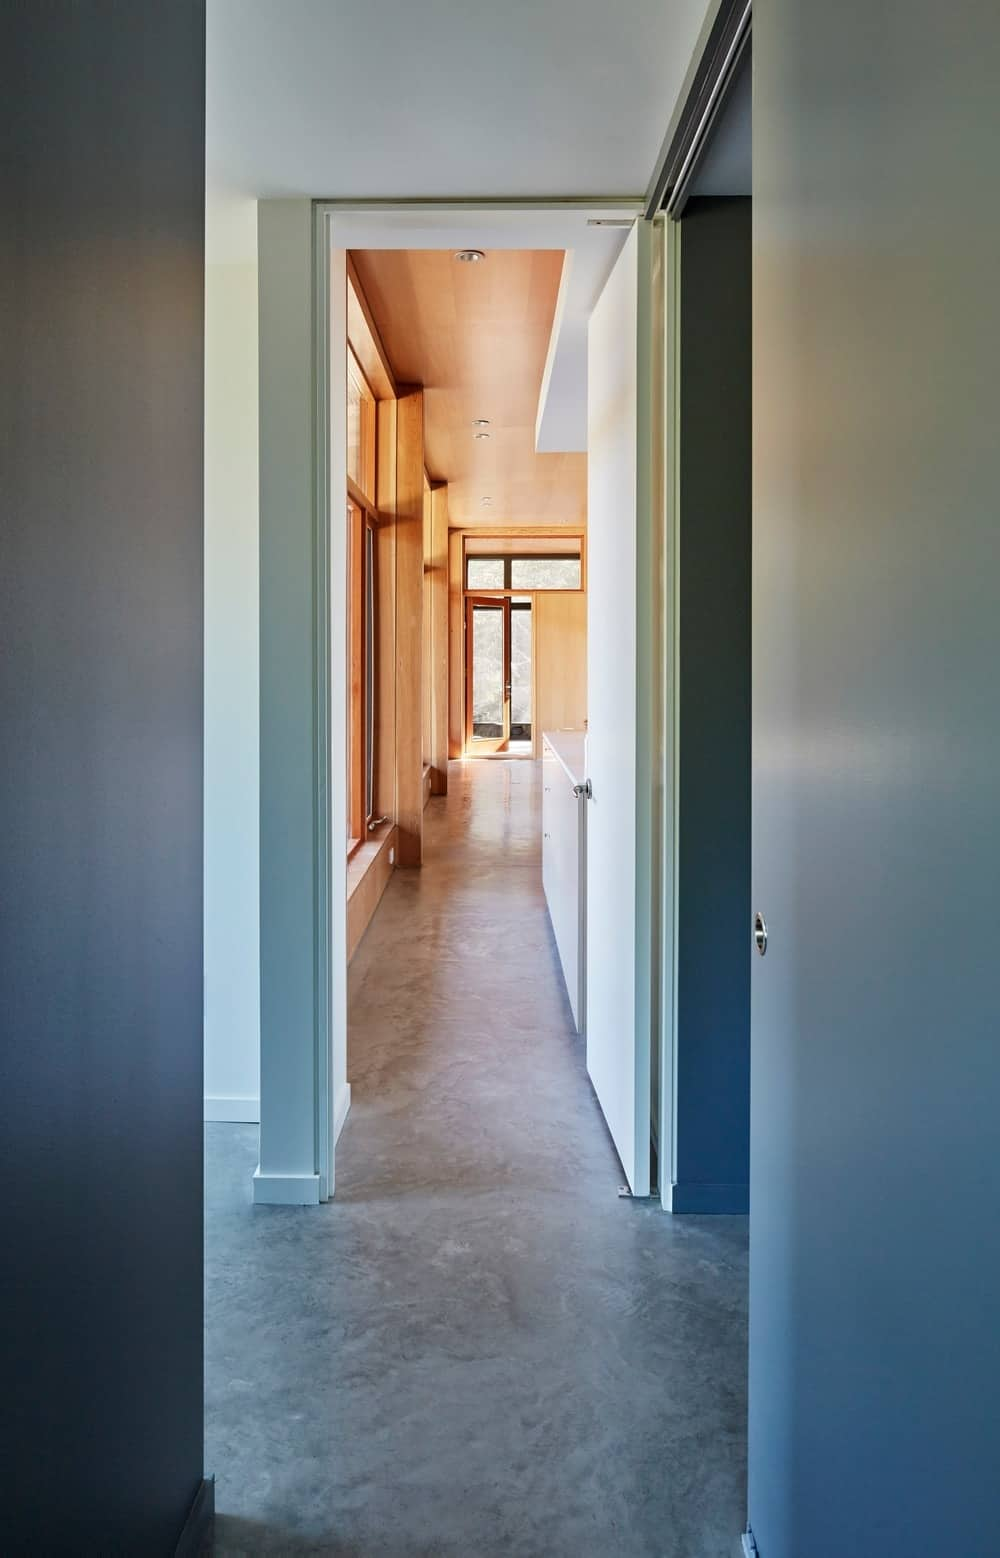 Hallway leading to different parts of the house featuring smooth flooring. Photo credit: Janet Kimber